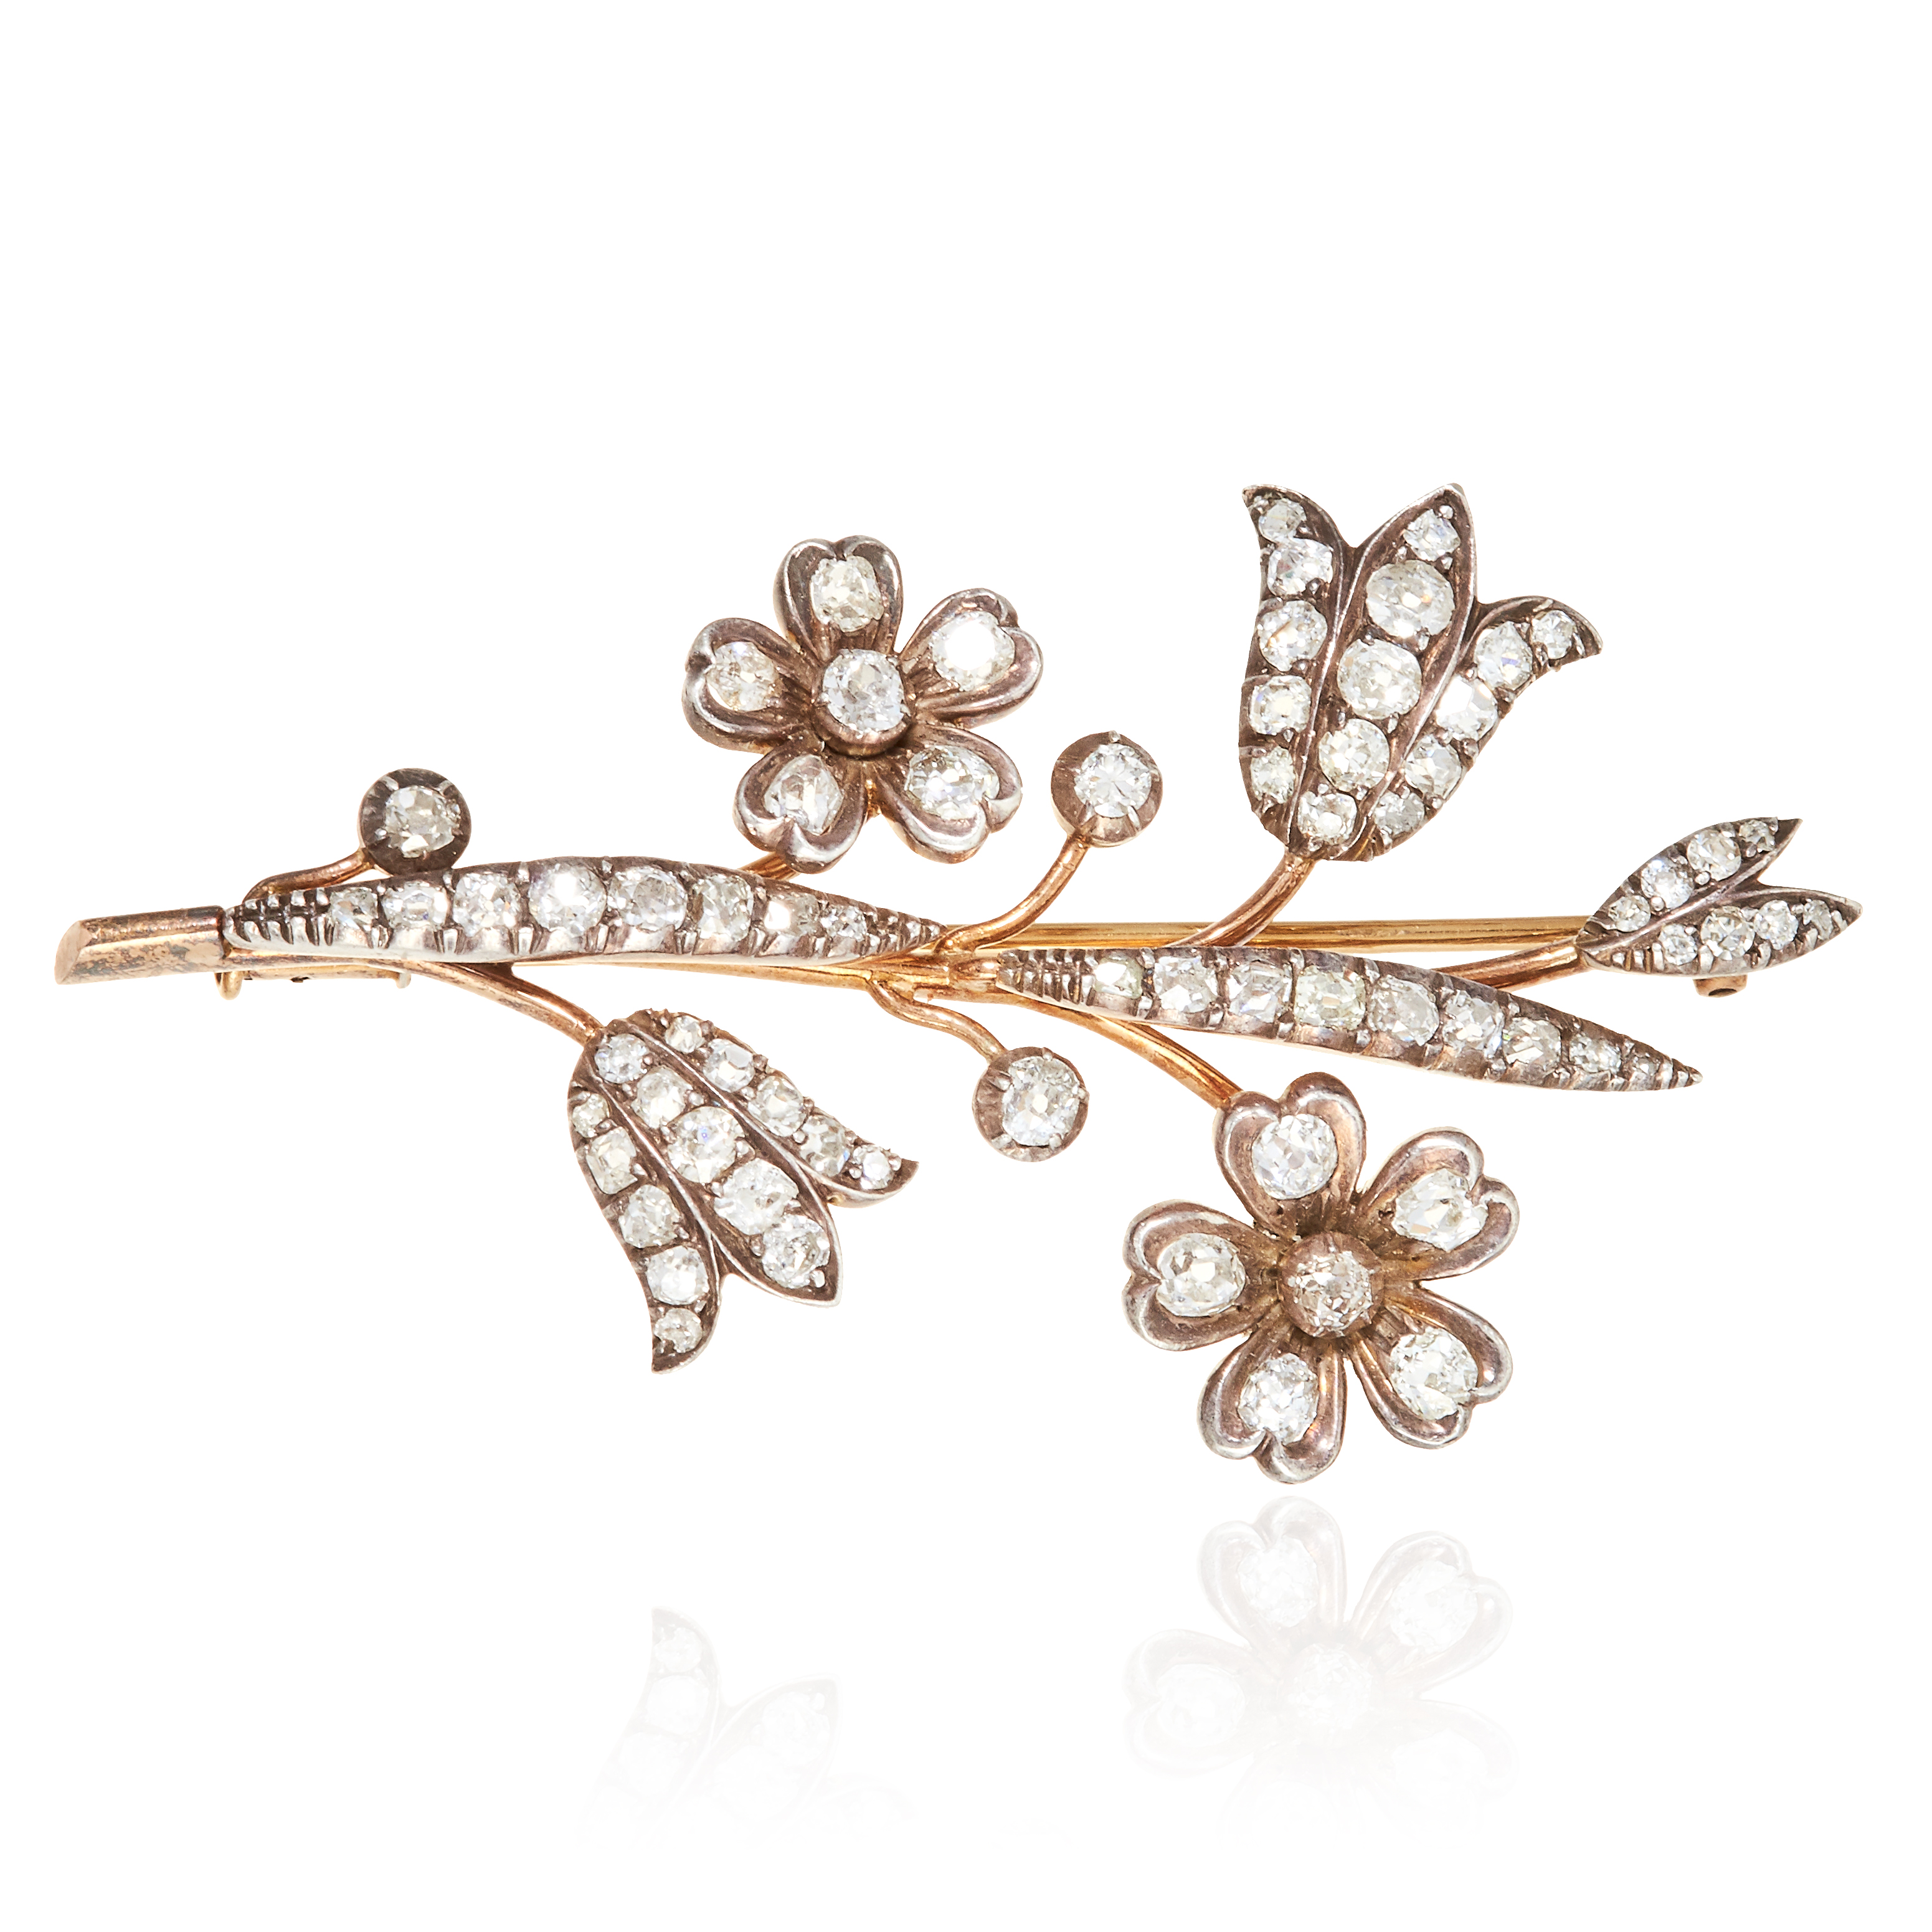 Los 36 - A DIAMOND FLOWER SPRAY BROOCH in gold or silver, designed as floral spray jewelled with old cut